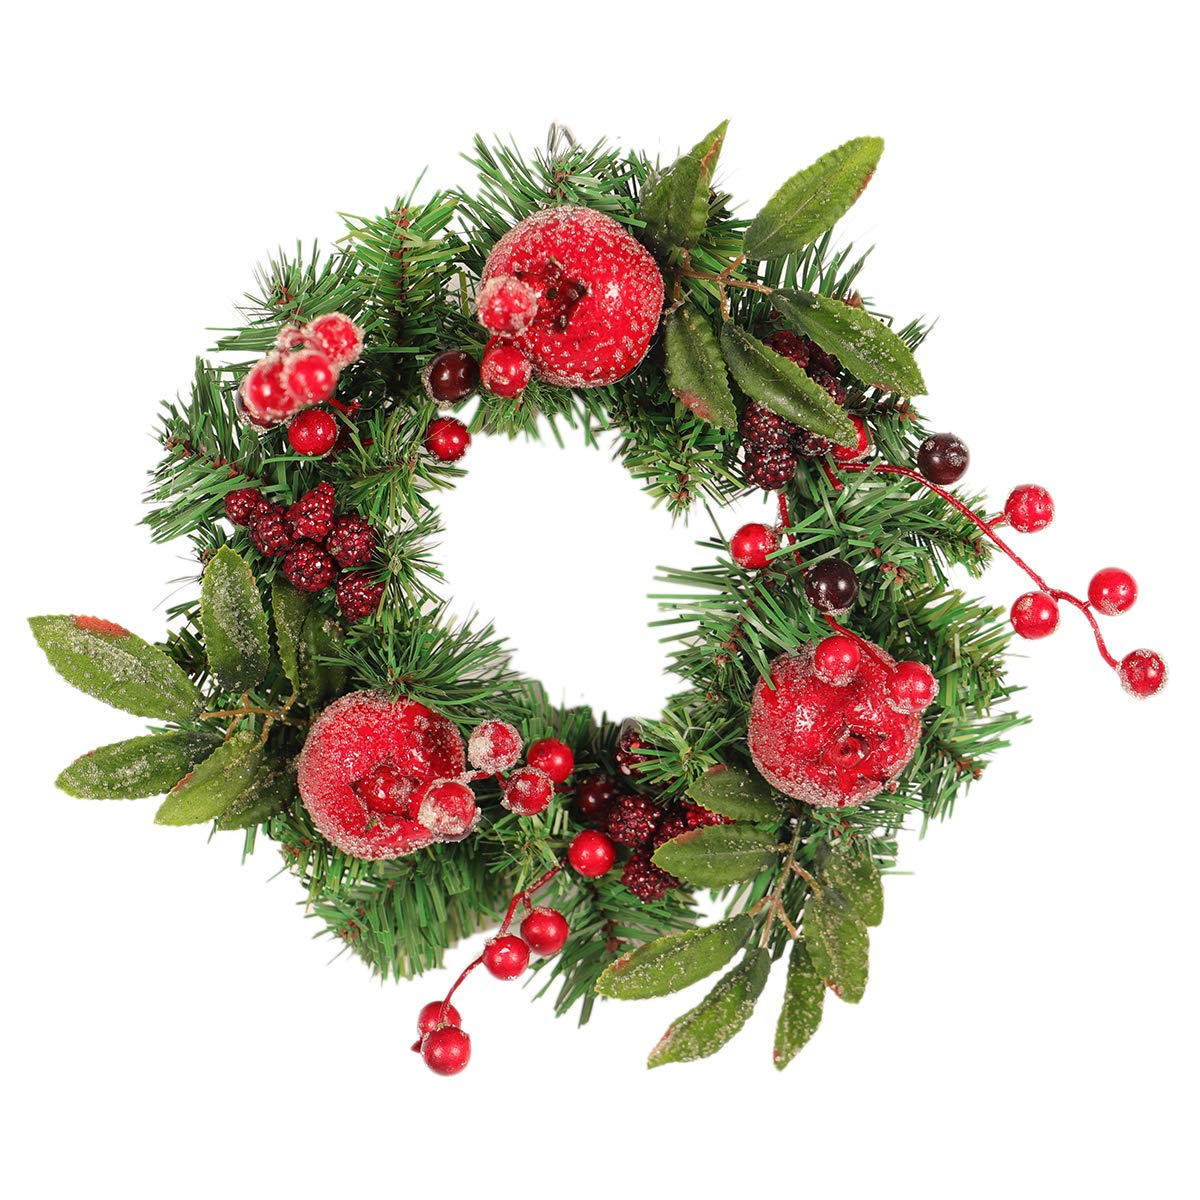 ACMEDE Wreath Artificial Leafs Berries Year Round Beautiful Wreath Transforms Front Door Decor for Restaurant Hotel Home Mall (Diameter 30cm)